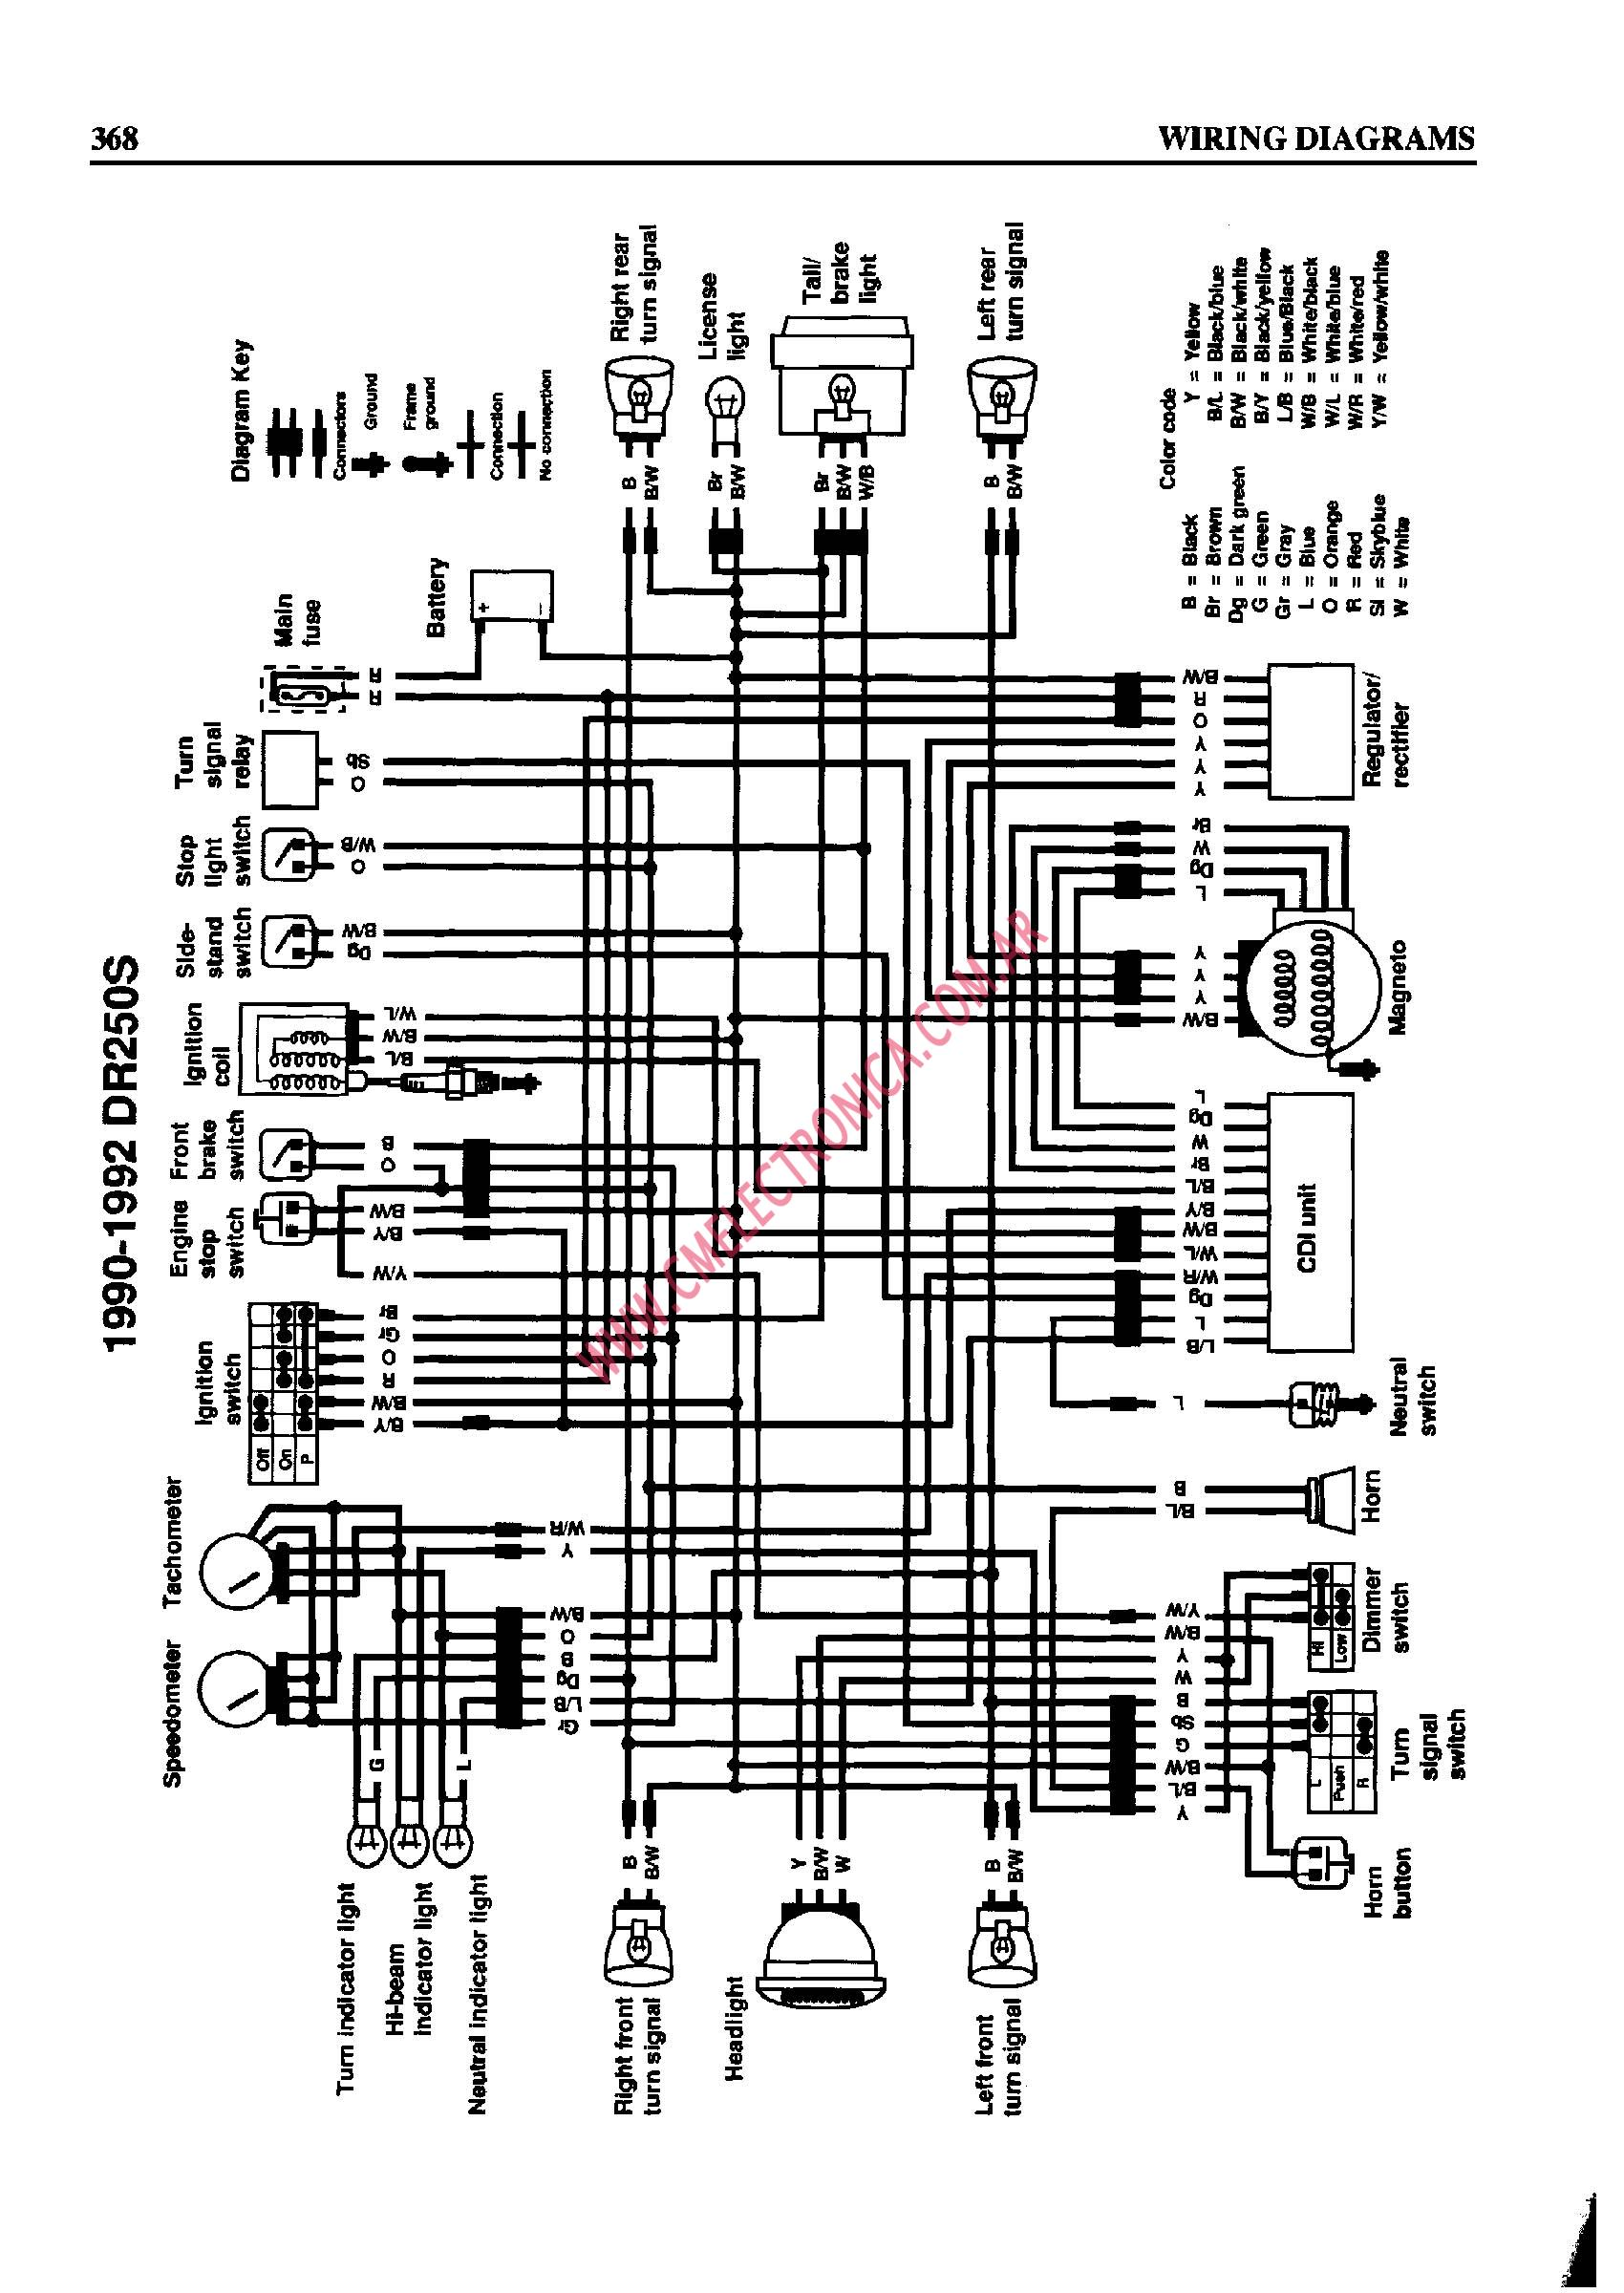 honda helix wiring diagram drayton 3 port mid position valve carburetor - imageresizertool.com